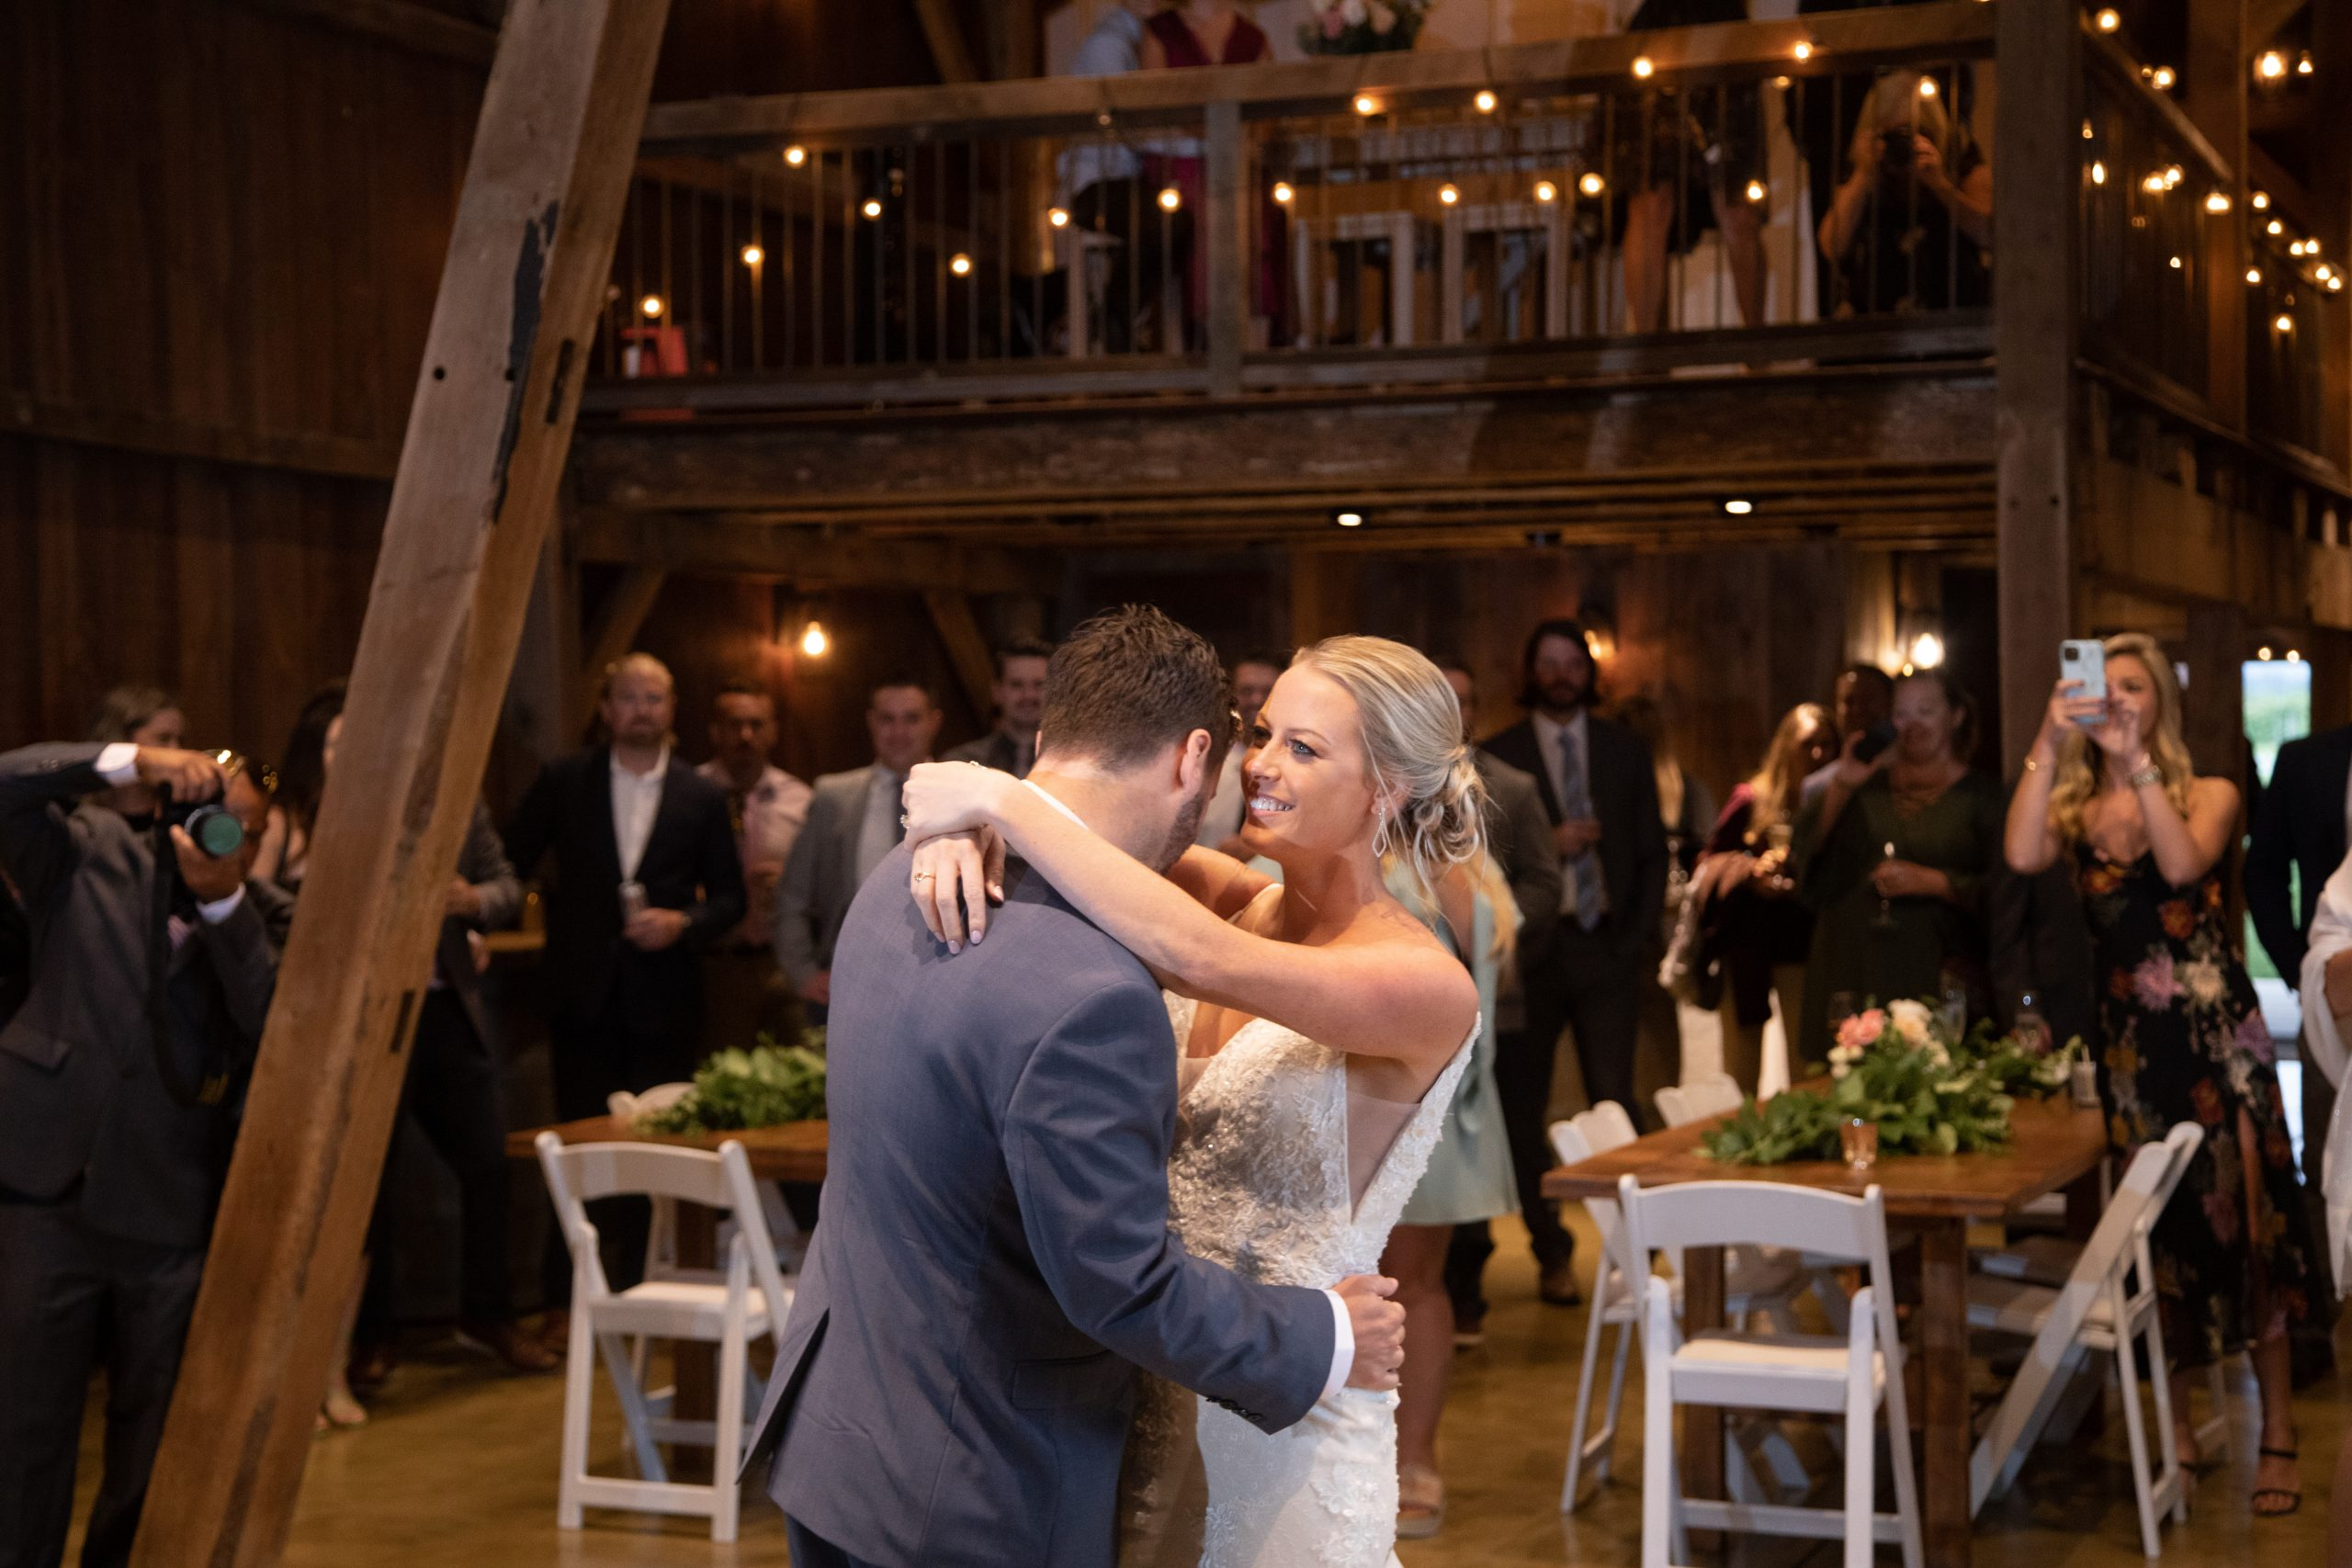 Kalero Vineyard wedding first dance photographs, Stephanie Leigh Photography & Design